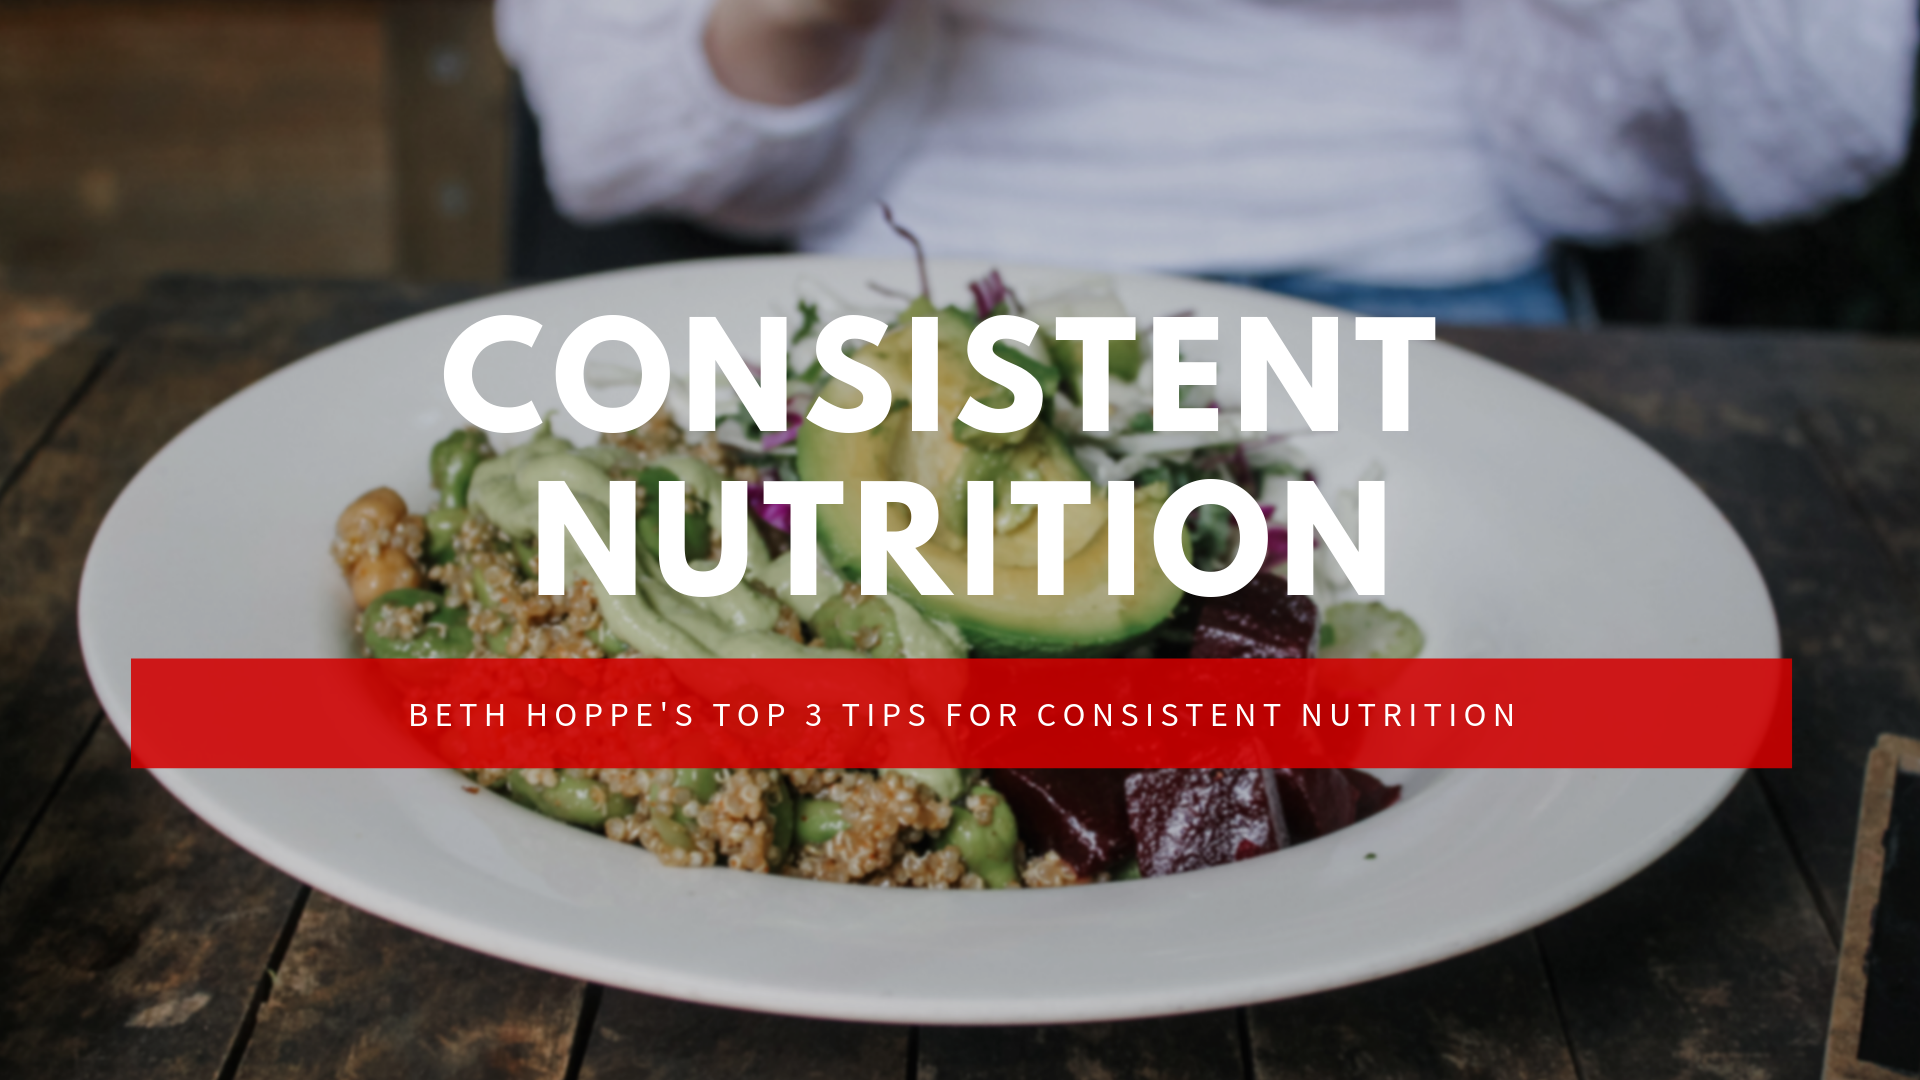 3 Tips for Consistent Nutrition